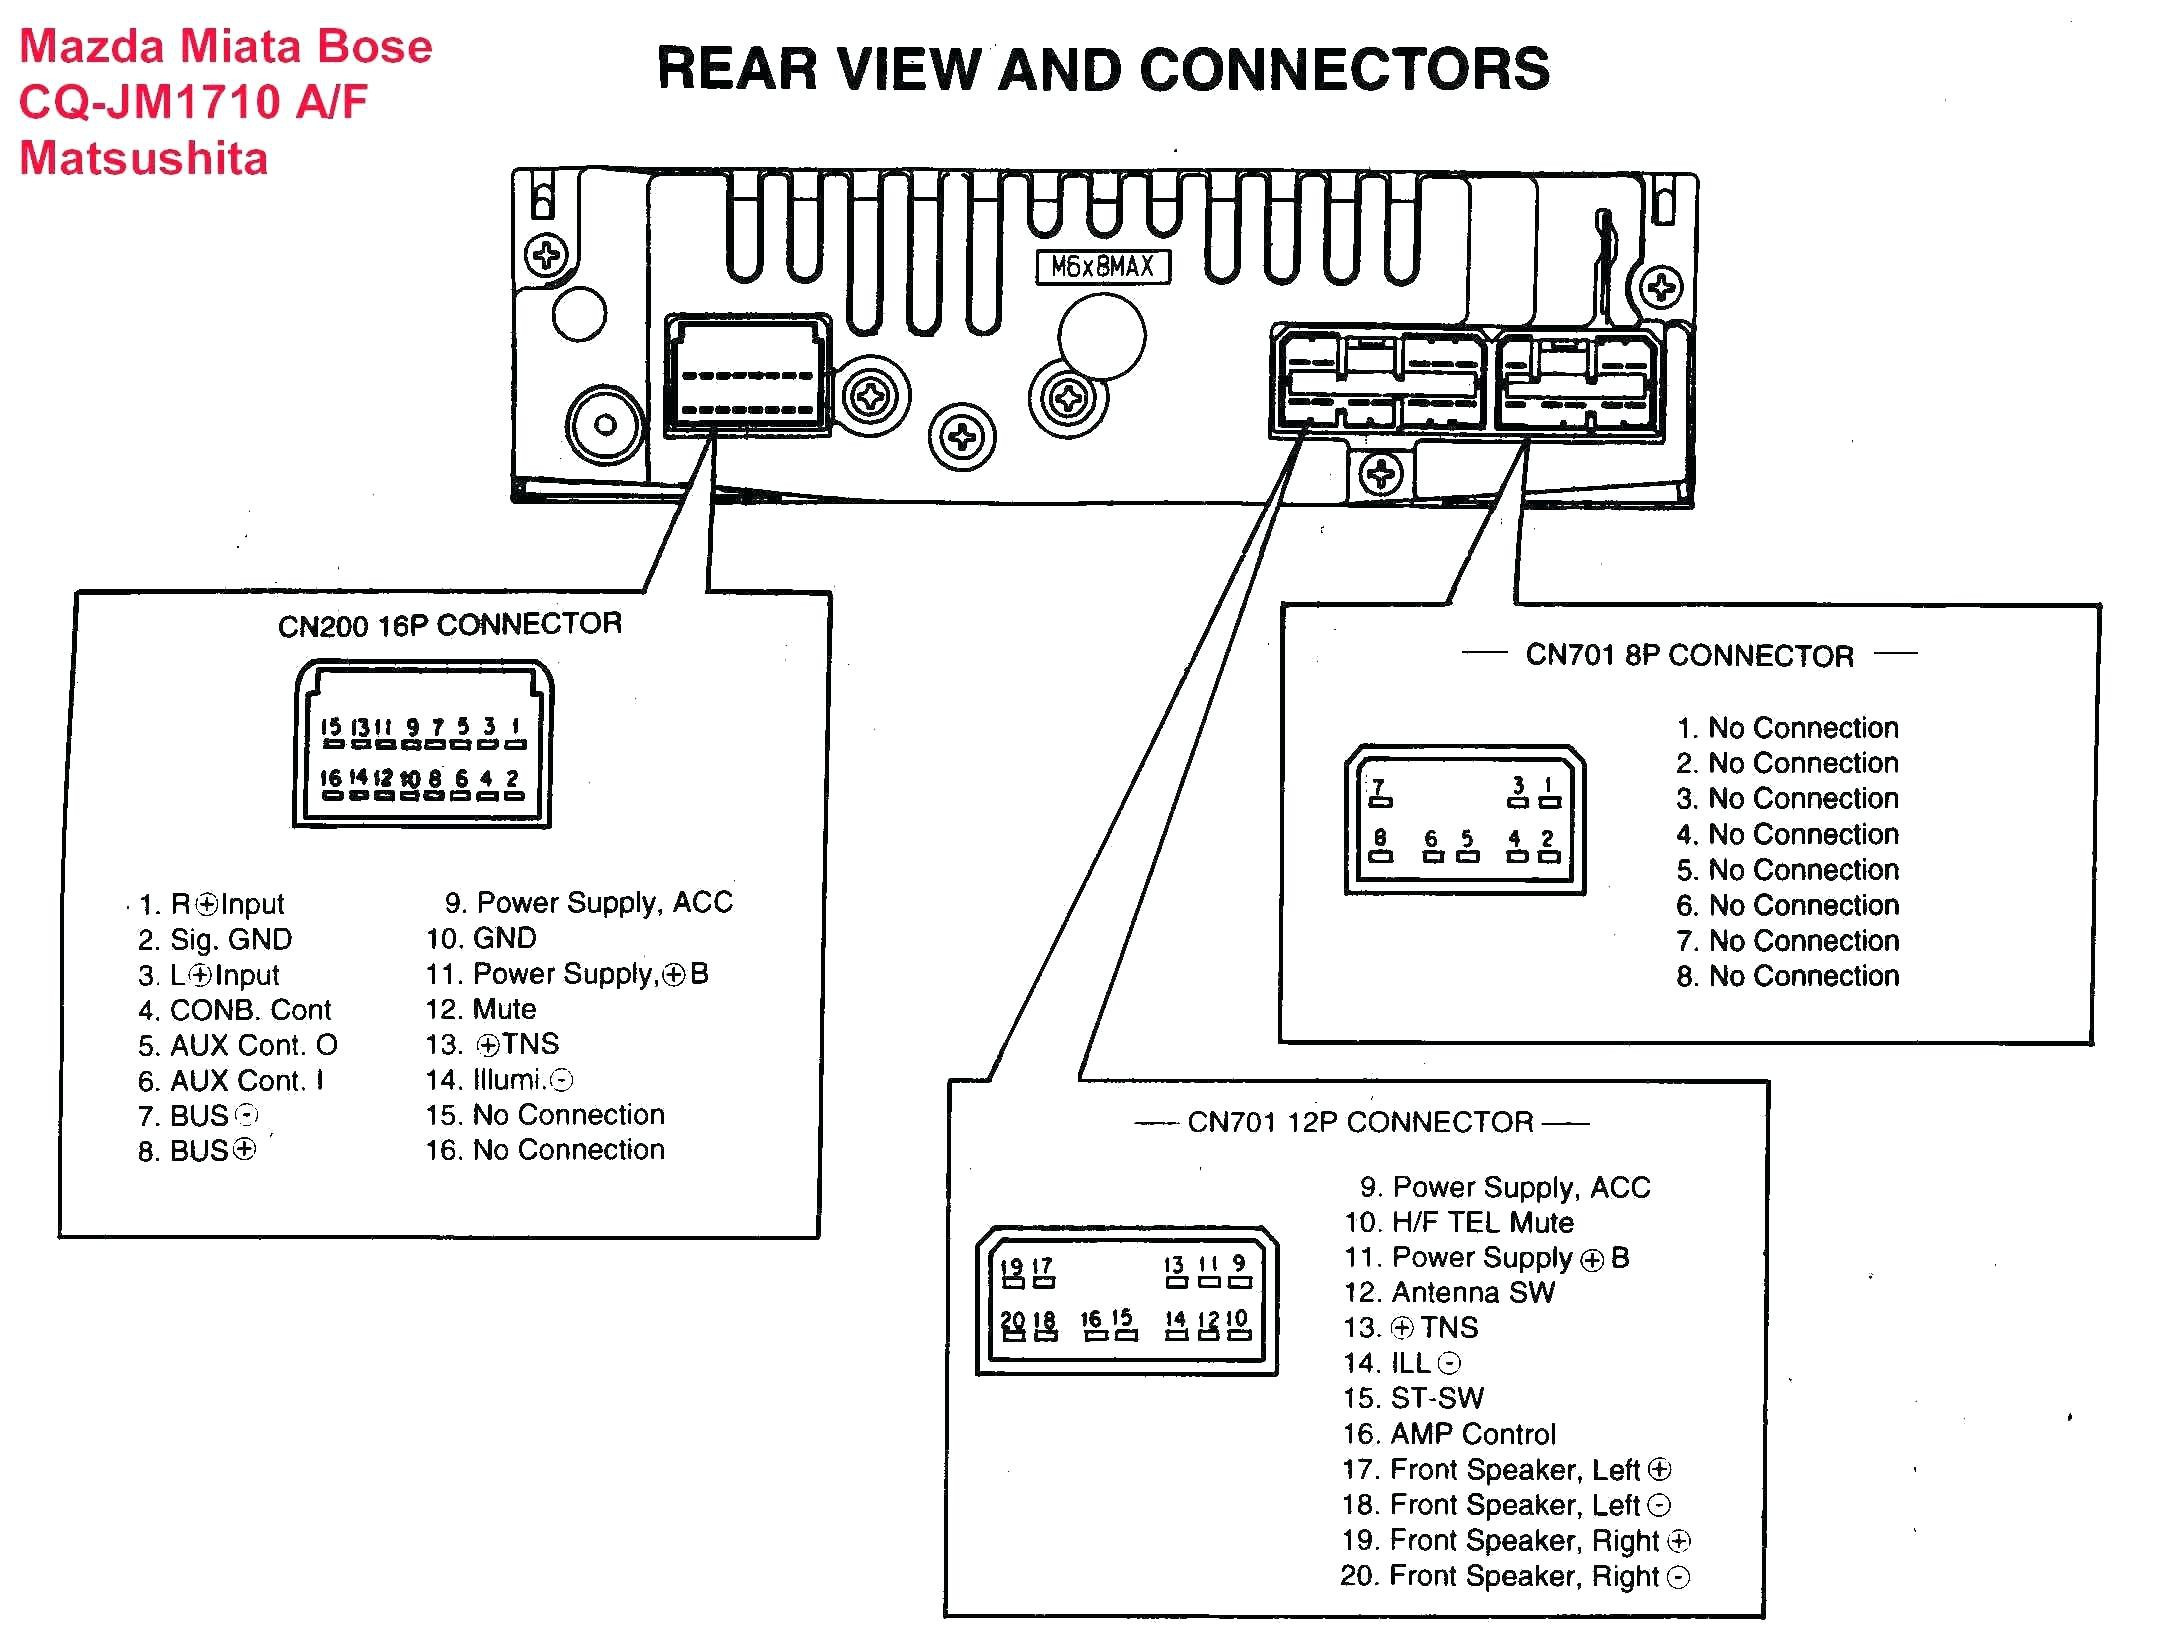 DIAGRAM] Sony Cdx M630 Wiring Diagram FULL Version HD Quality Wiring Diagram  - JOBDIAGRAMD.BRAMITA.ITbramita.it